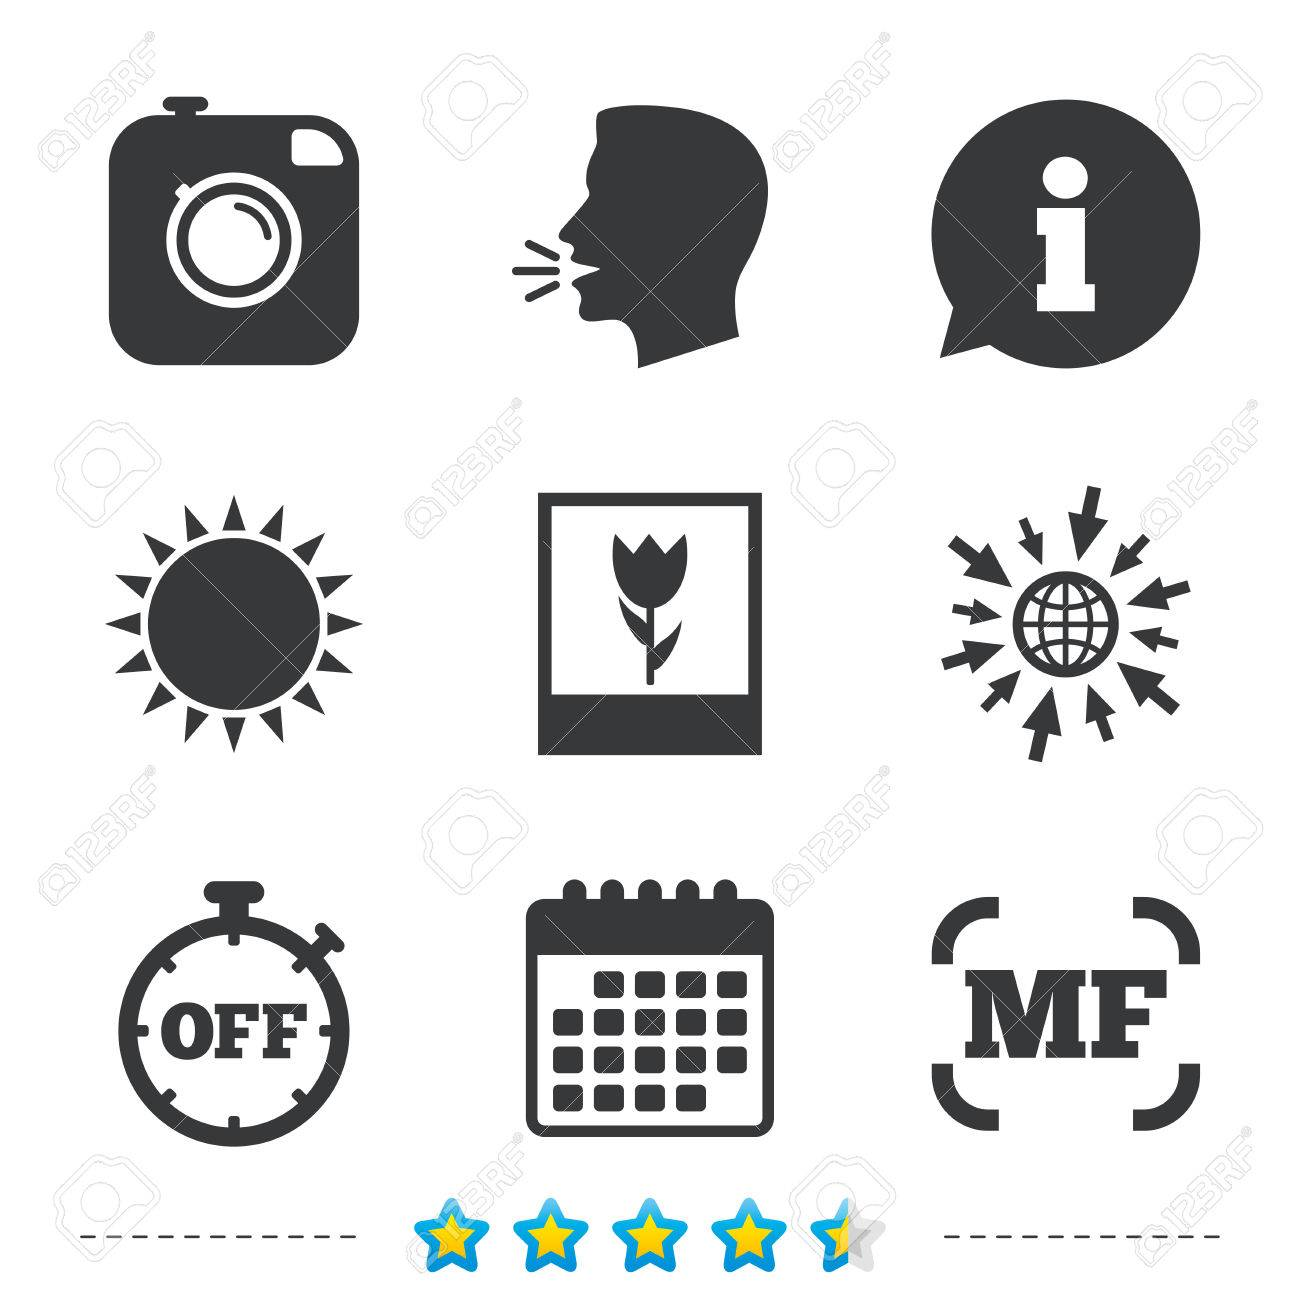 Charming symbols for off and on images electrical circuit off and on switch symbols dolgular biocorpaavc